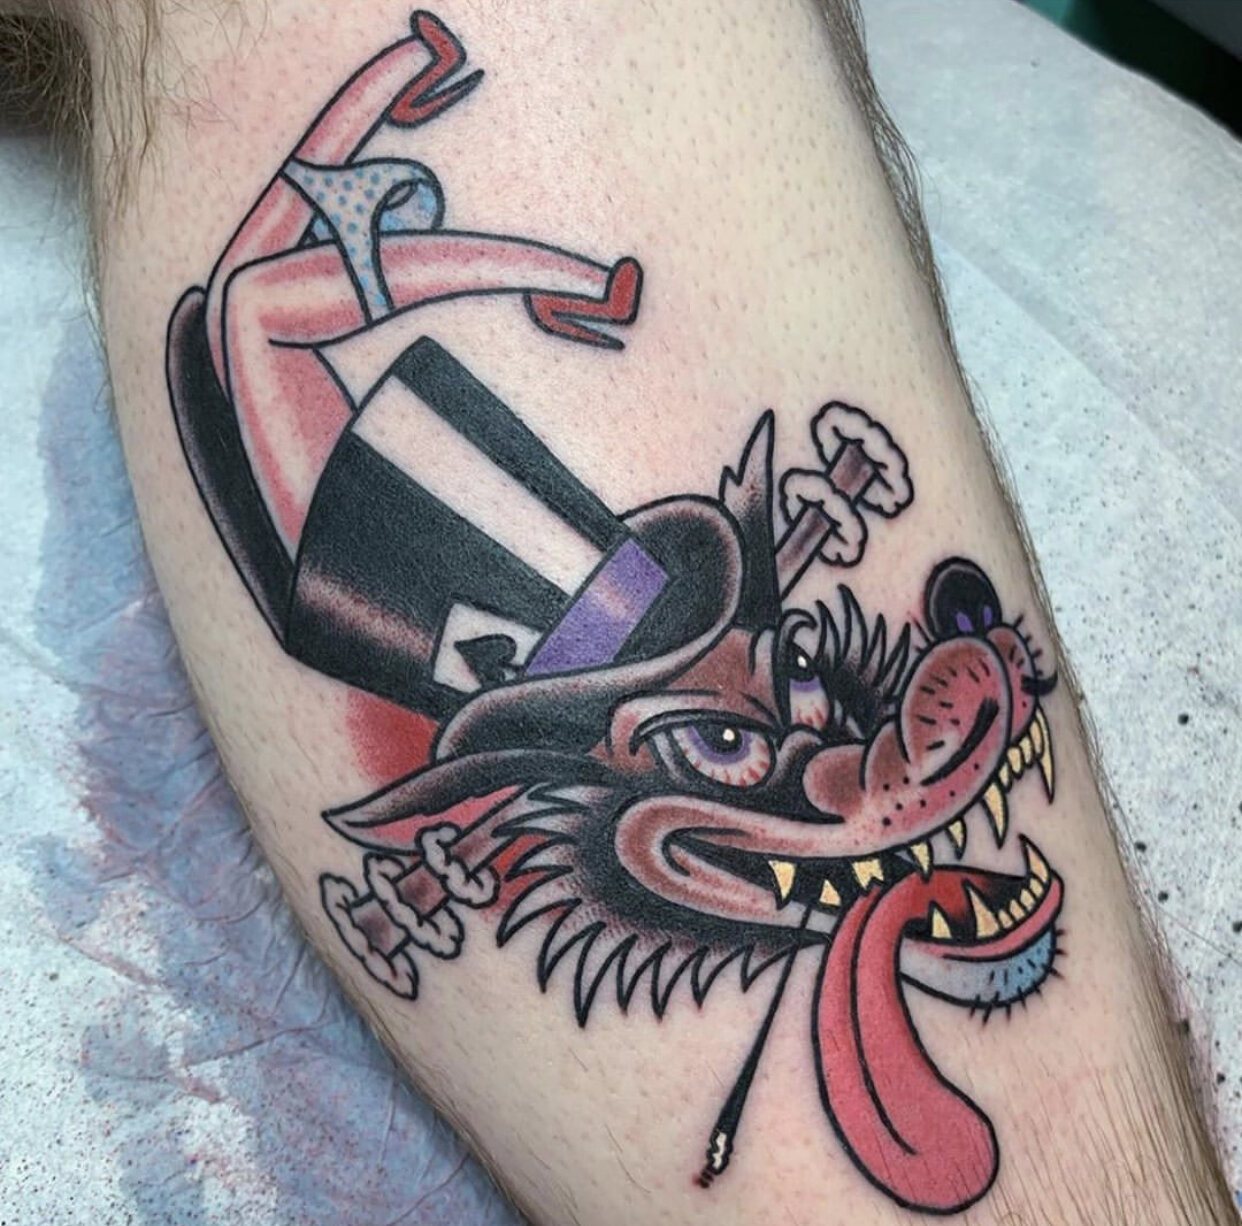 Coyote-Tattoo-Traditional-Stephen-Costello-Great-Wave-Tattoo-Austin-Texas.jpg